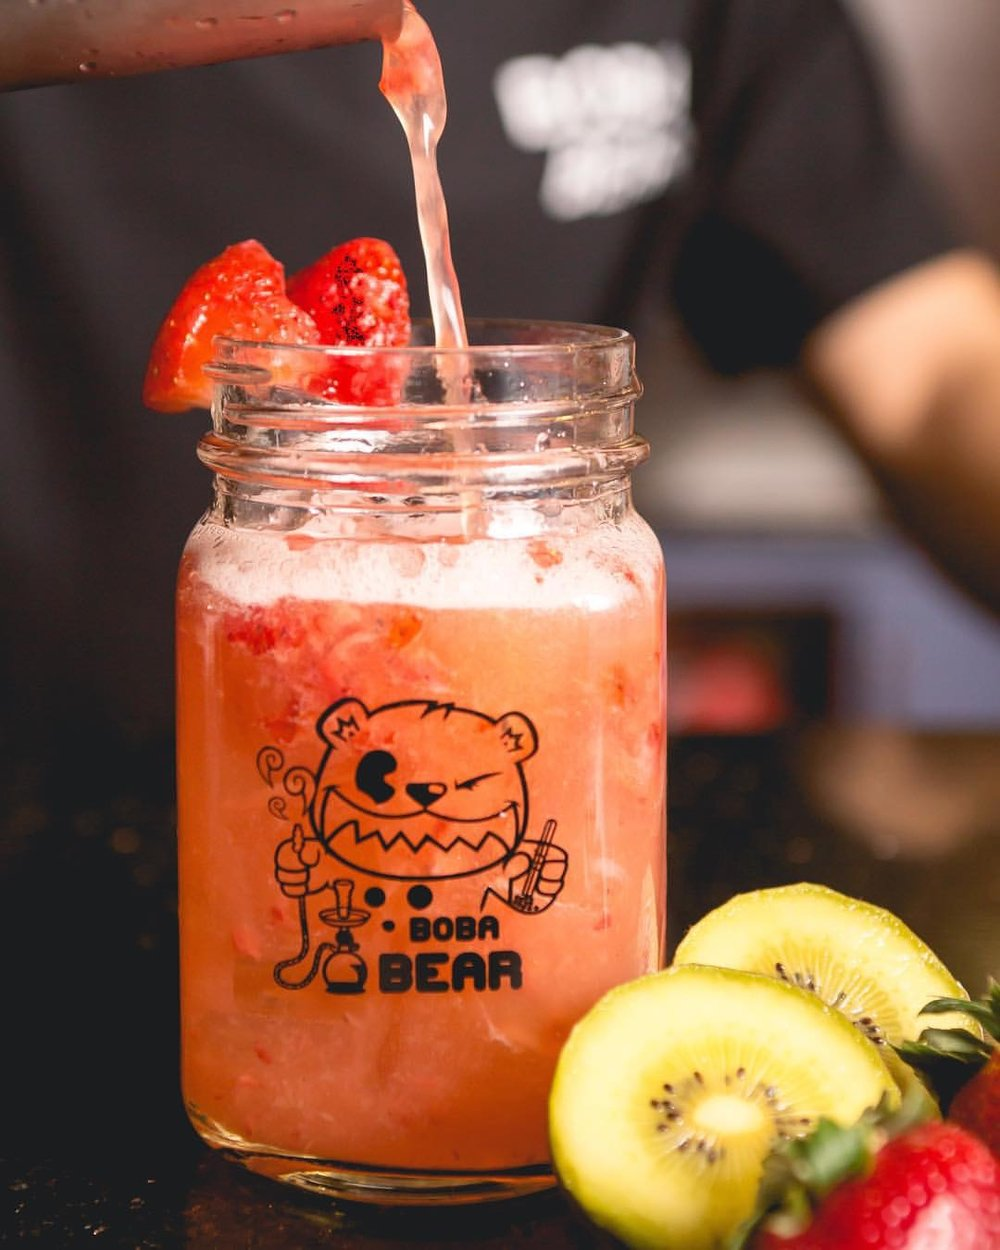 Boba Bear - Who here has spent many an evening drinking boba and smoking hookah at Boba Bear in K-town or Rowland Heights? They will be selling their signature drinks such as the Razzle Dazzle with raspberry, strawberry and orange green tea or the Yoda with kiwi, honeydew, and lychee green tea as well as their milk tea in a classic mason jar.